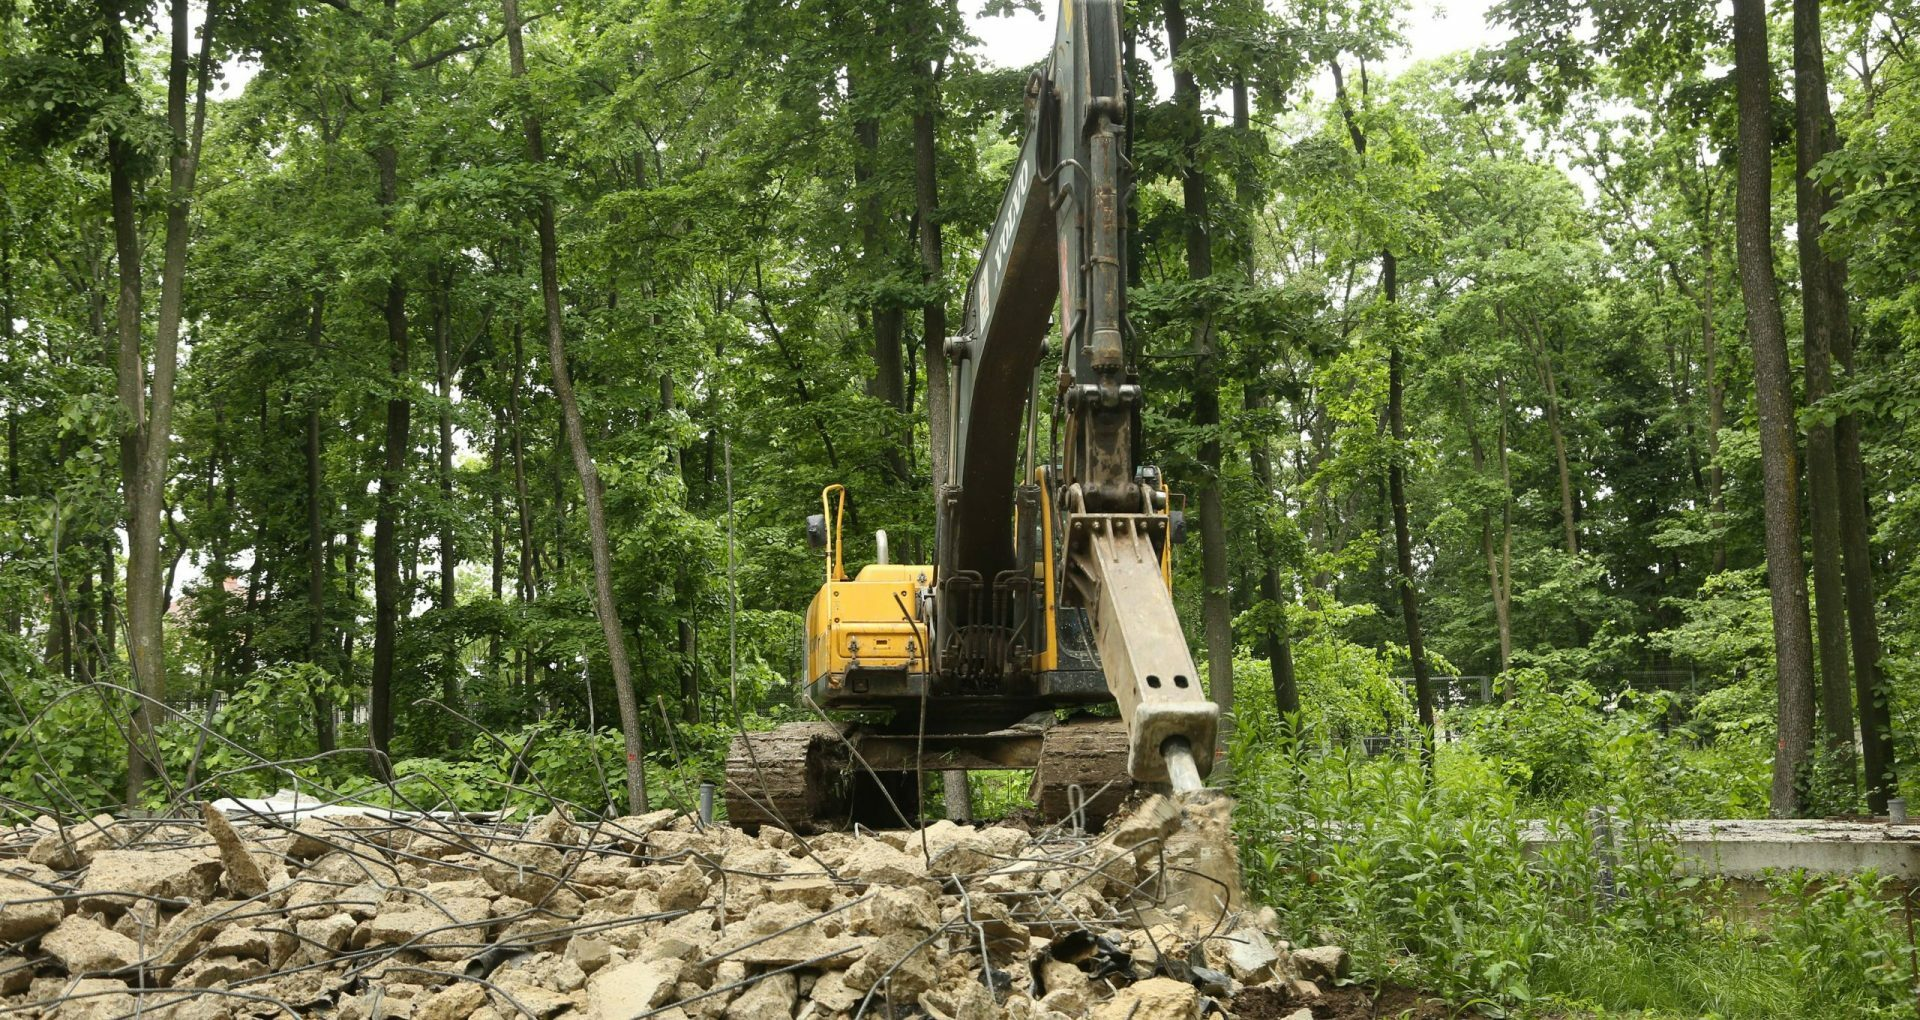 The Concrete Constructions Built in the Durlești Forest are Demolished after a ZdG Investigation